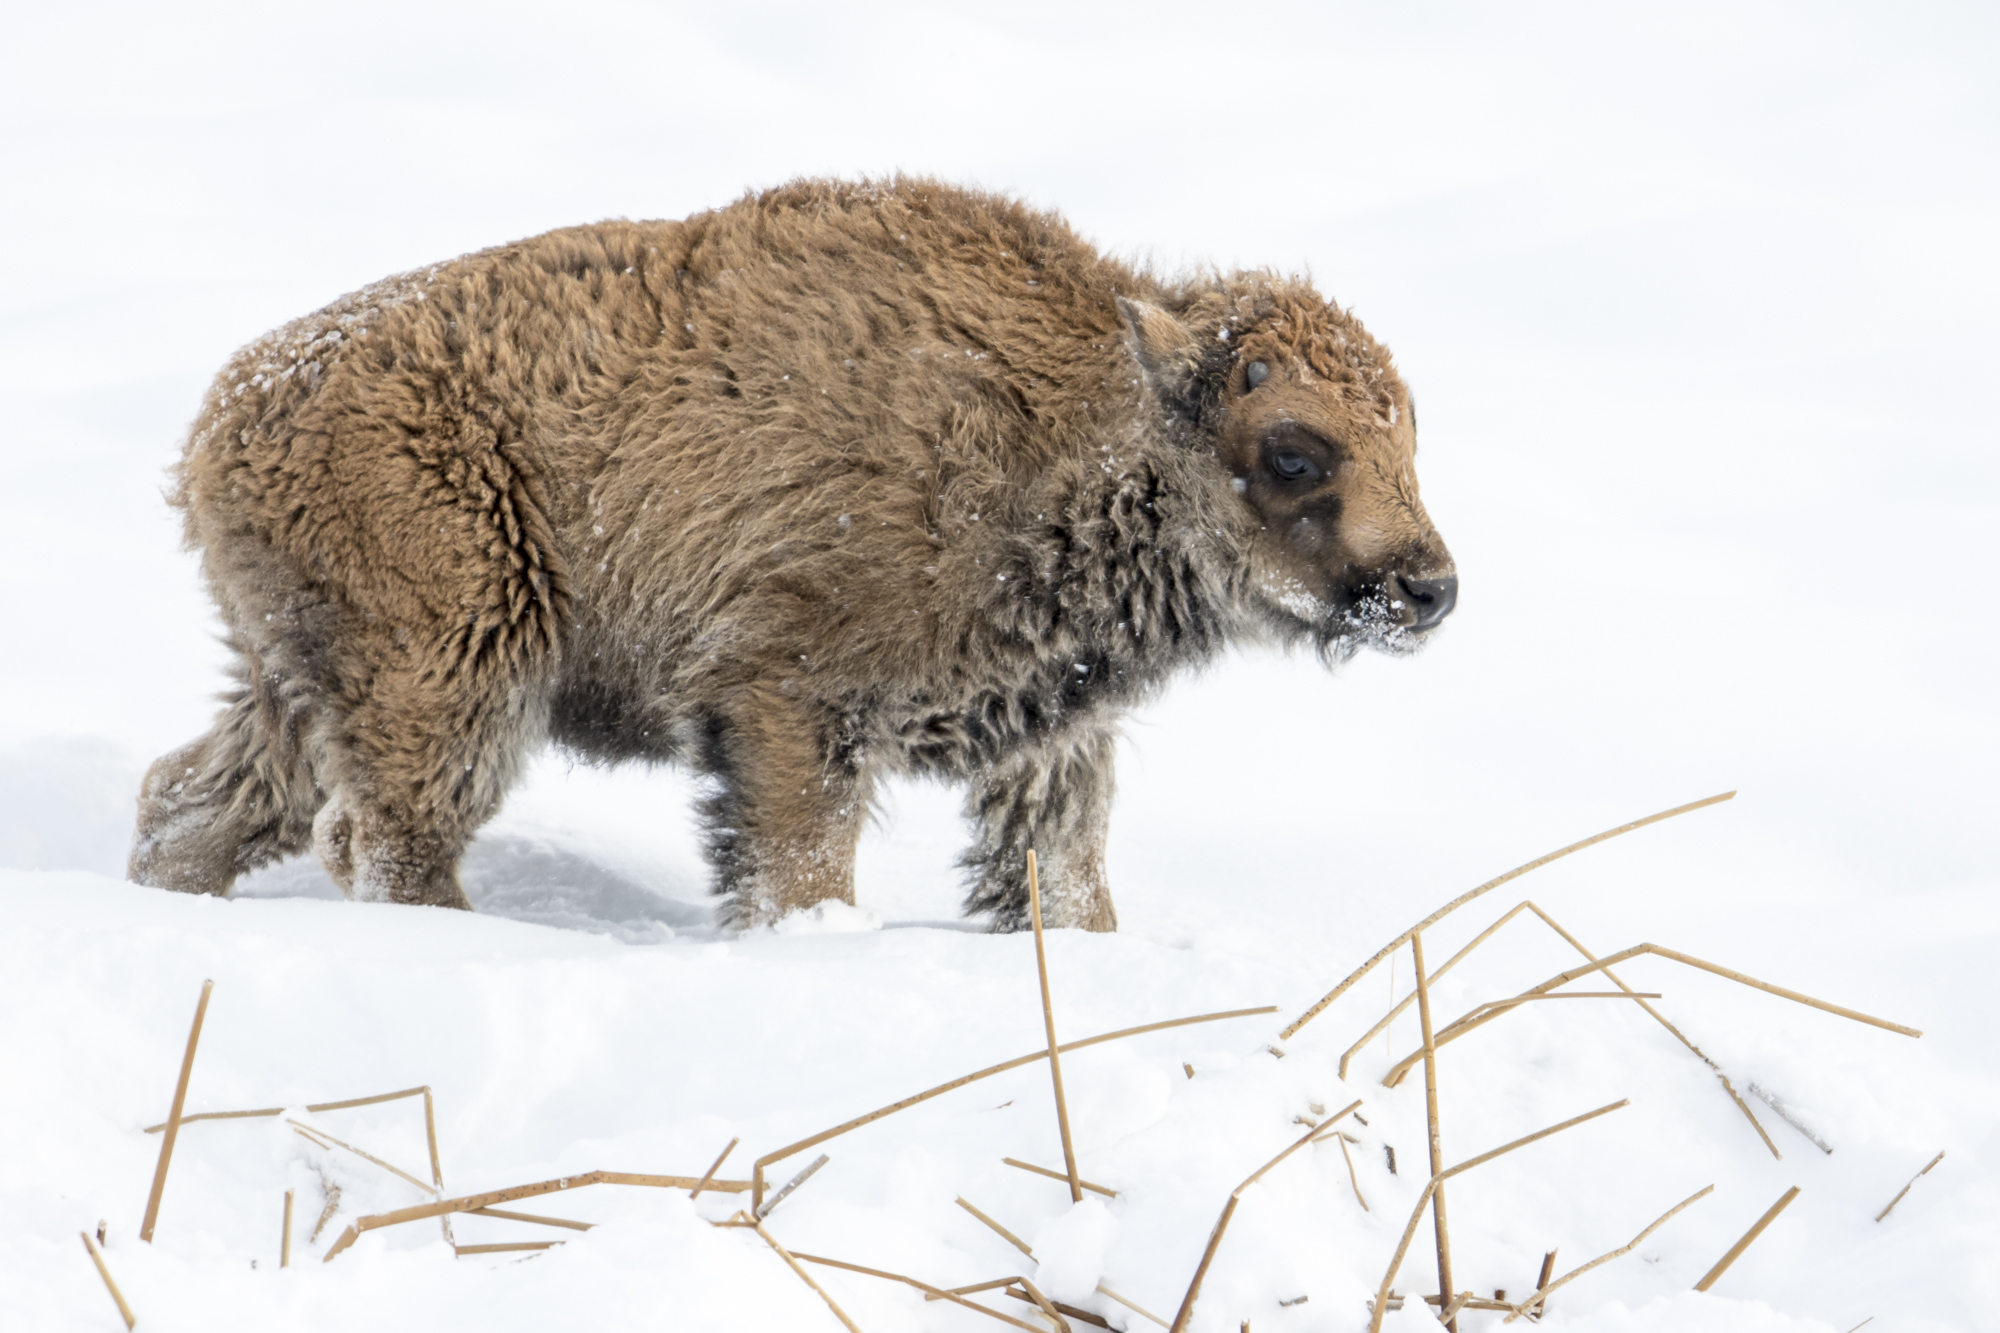 Baby bison - late calf